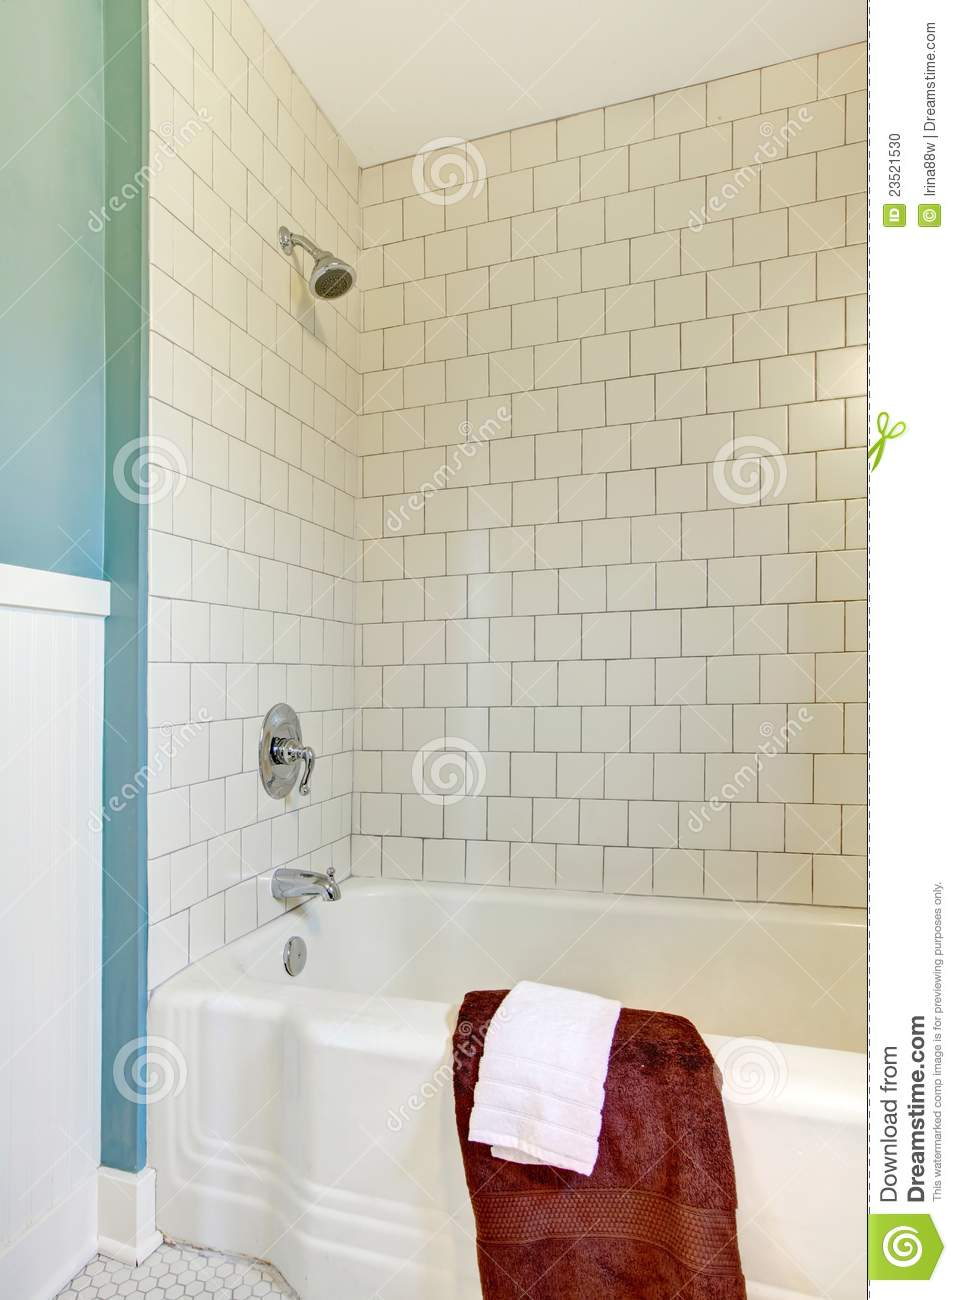 Shower Tub White Classic Tile And Blue Wall. Stock Photo - Image ...